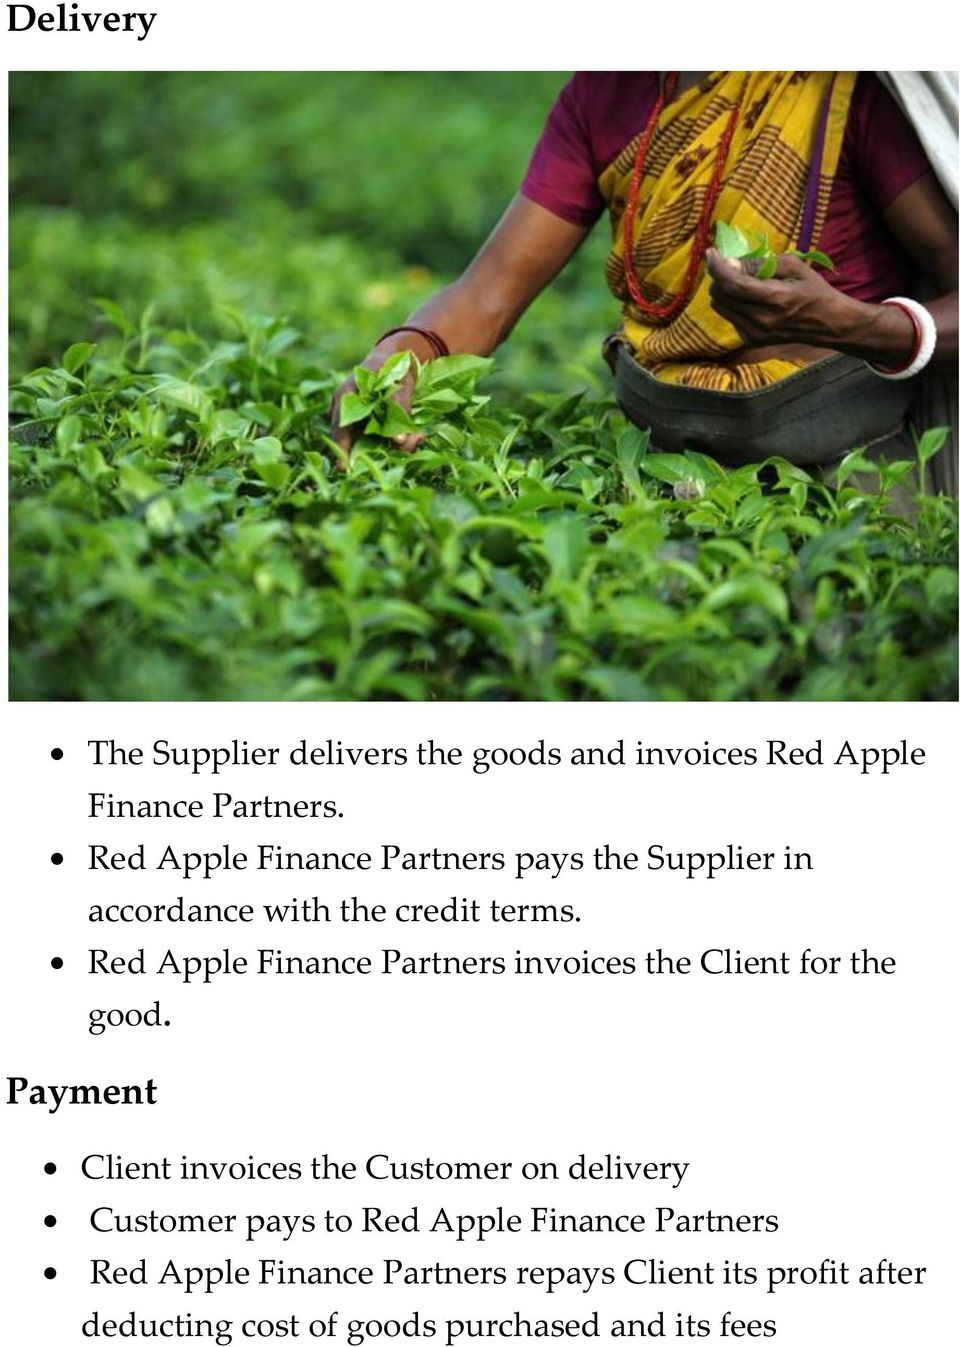 Red Apple Finance Partners invoices the Client for the good.